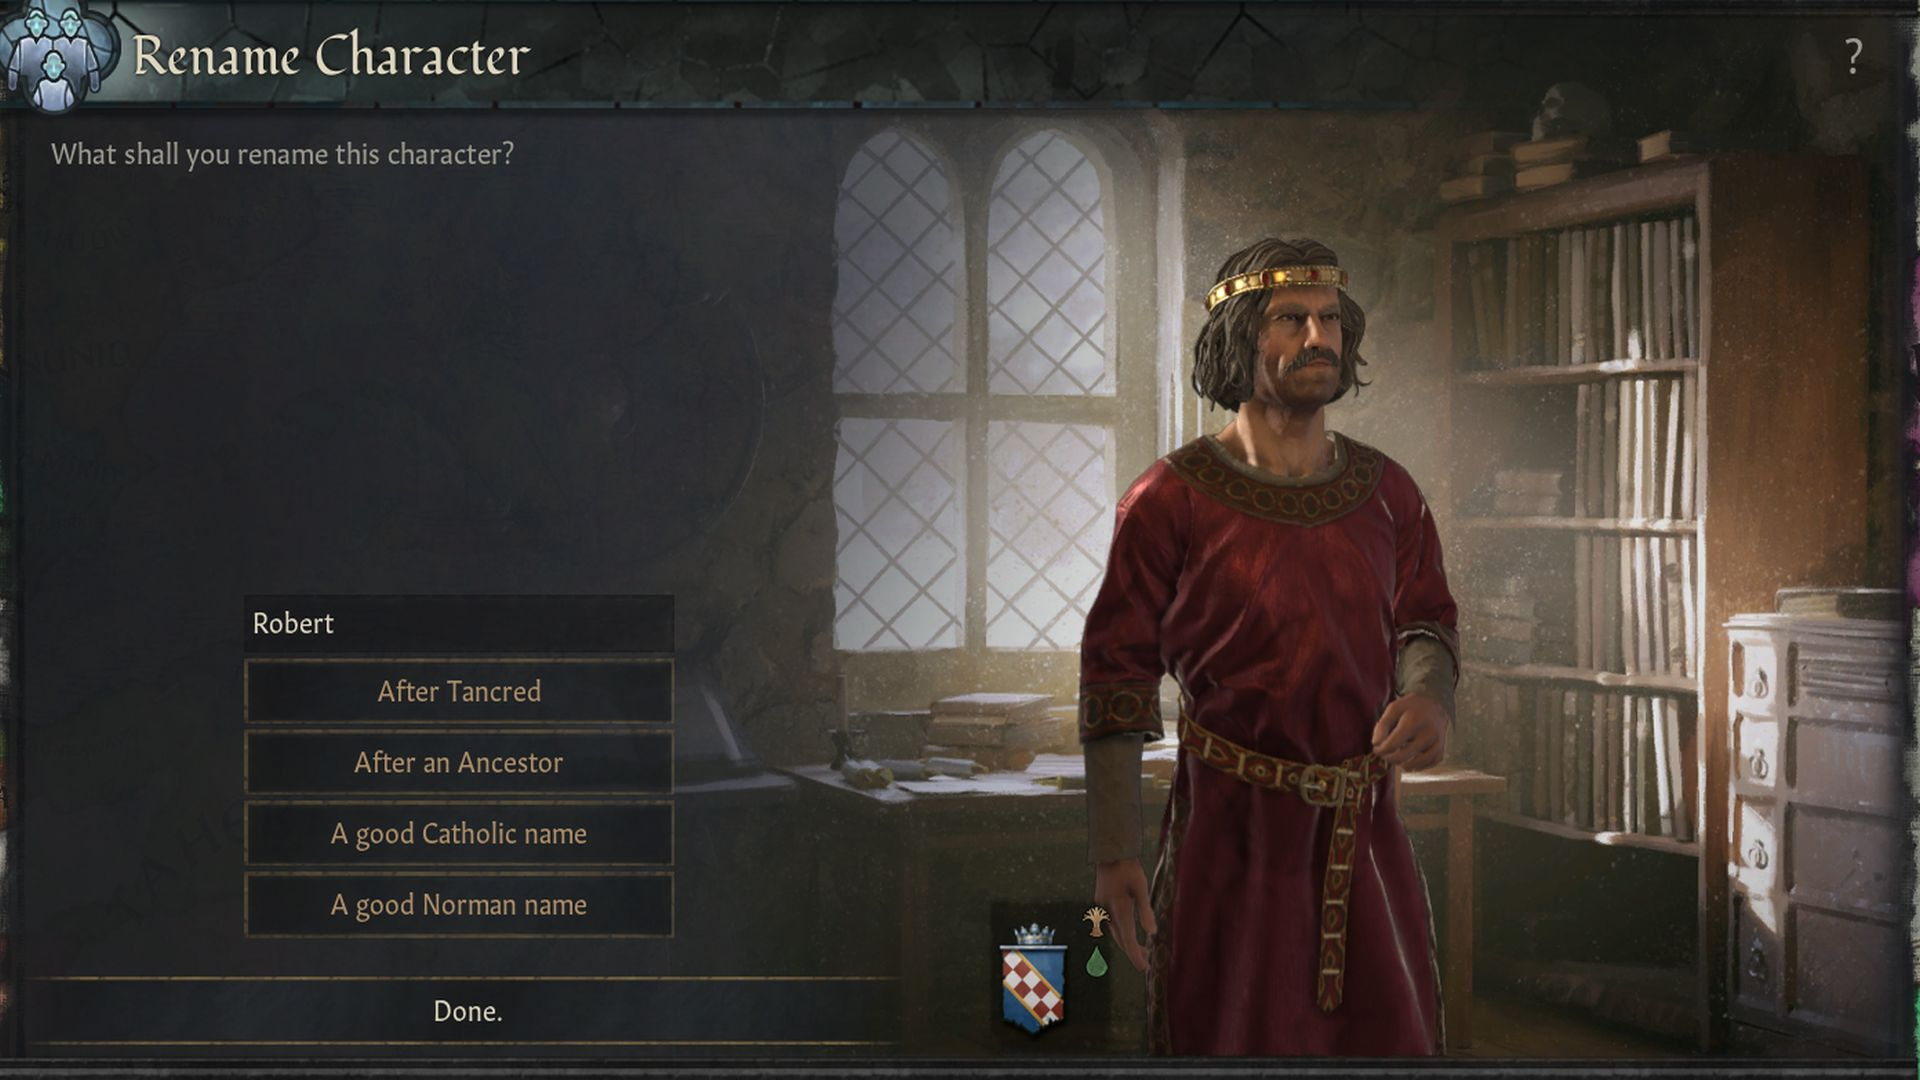 A Crusader Kings 3 screenshot, with a new character renaming menu